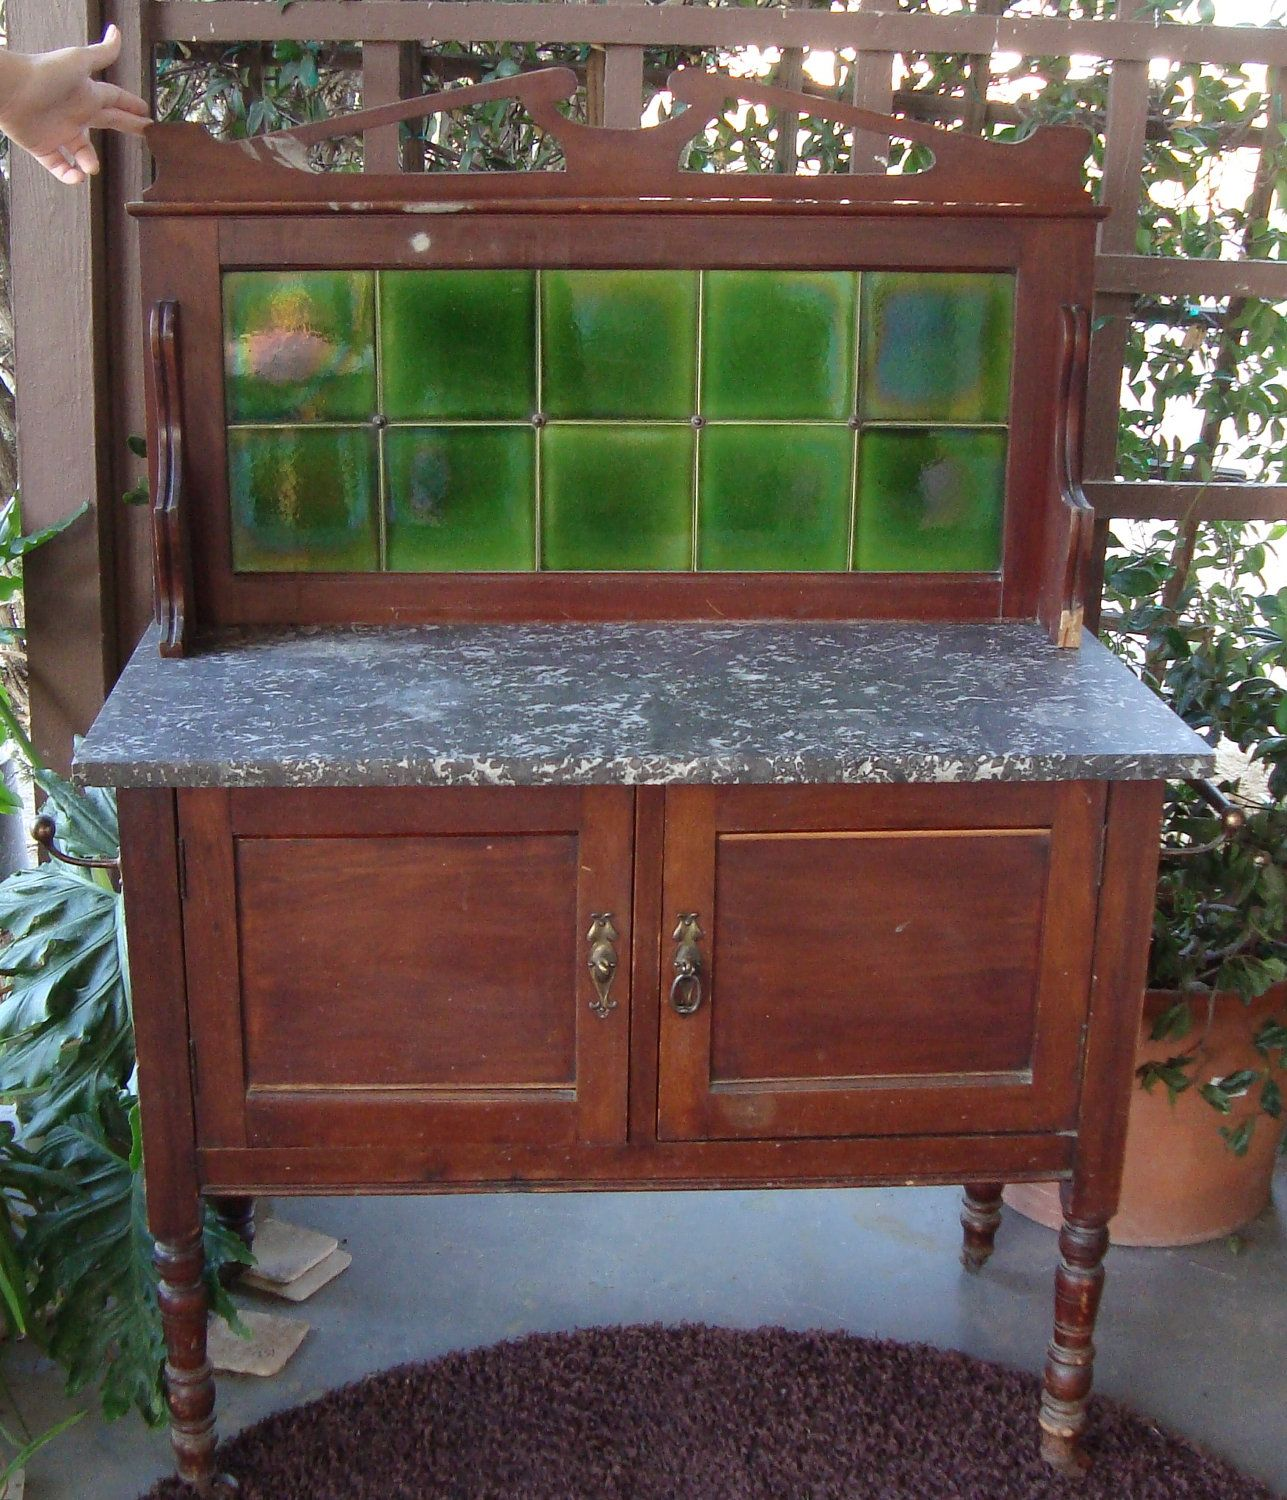 ANtique Arts and Crafts Era Wash Stand Dry Sink W/ Grueby Tiles ...